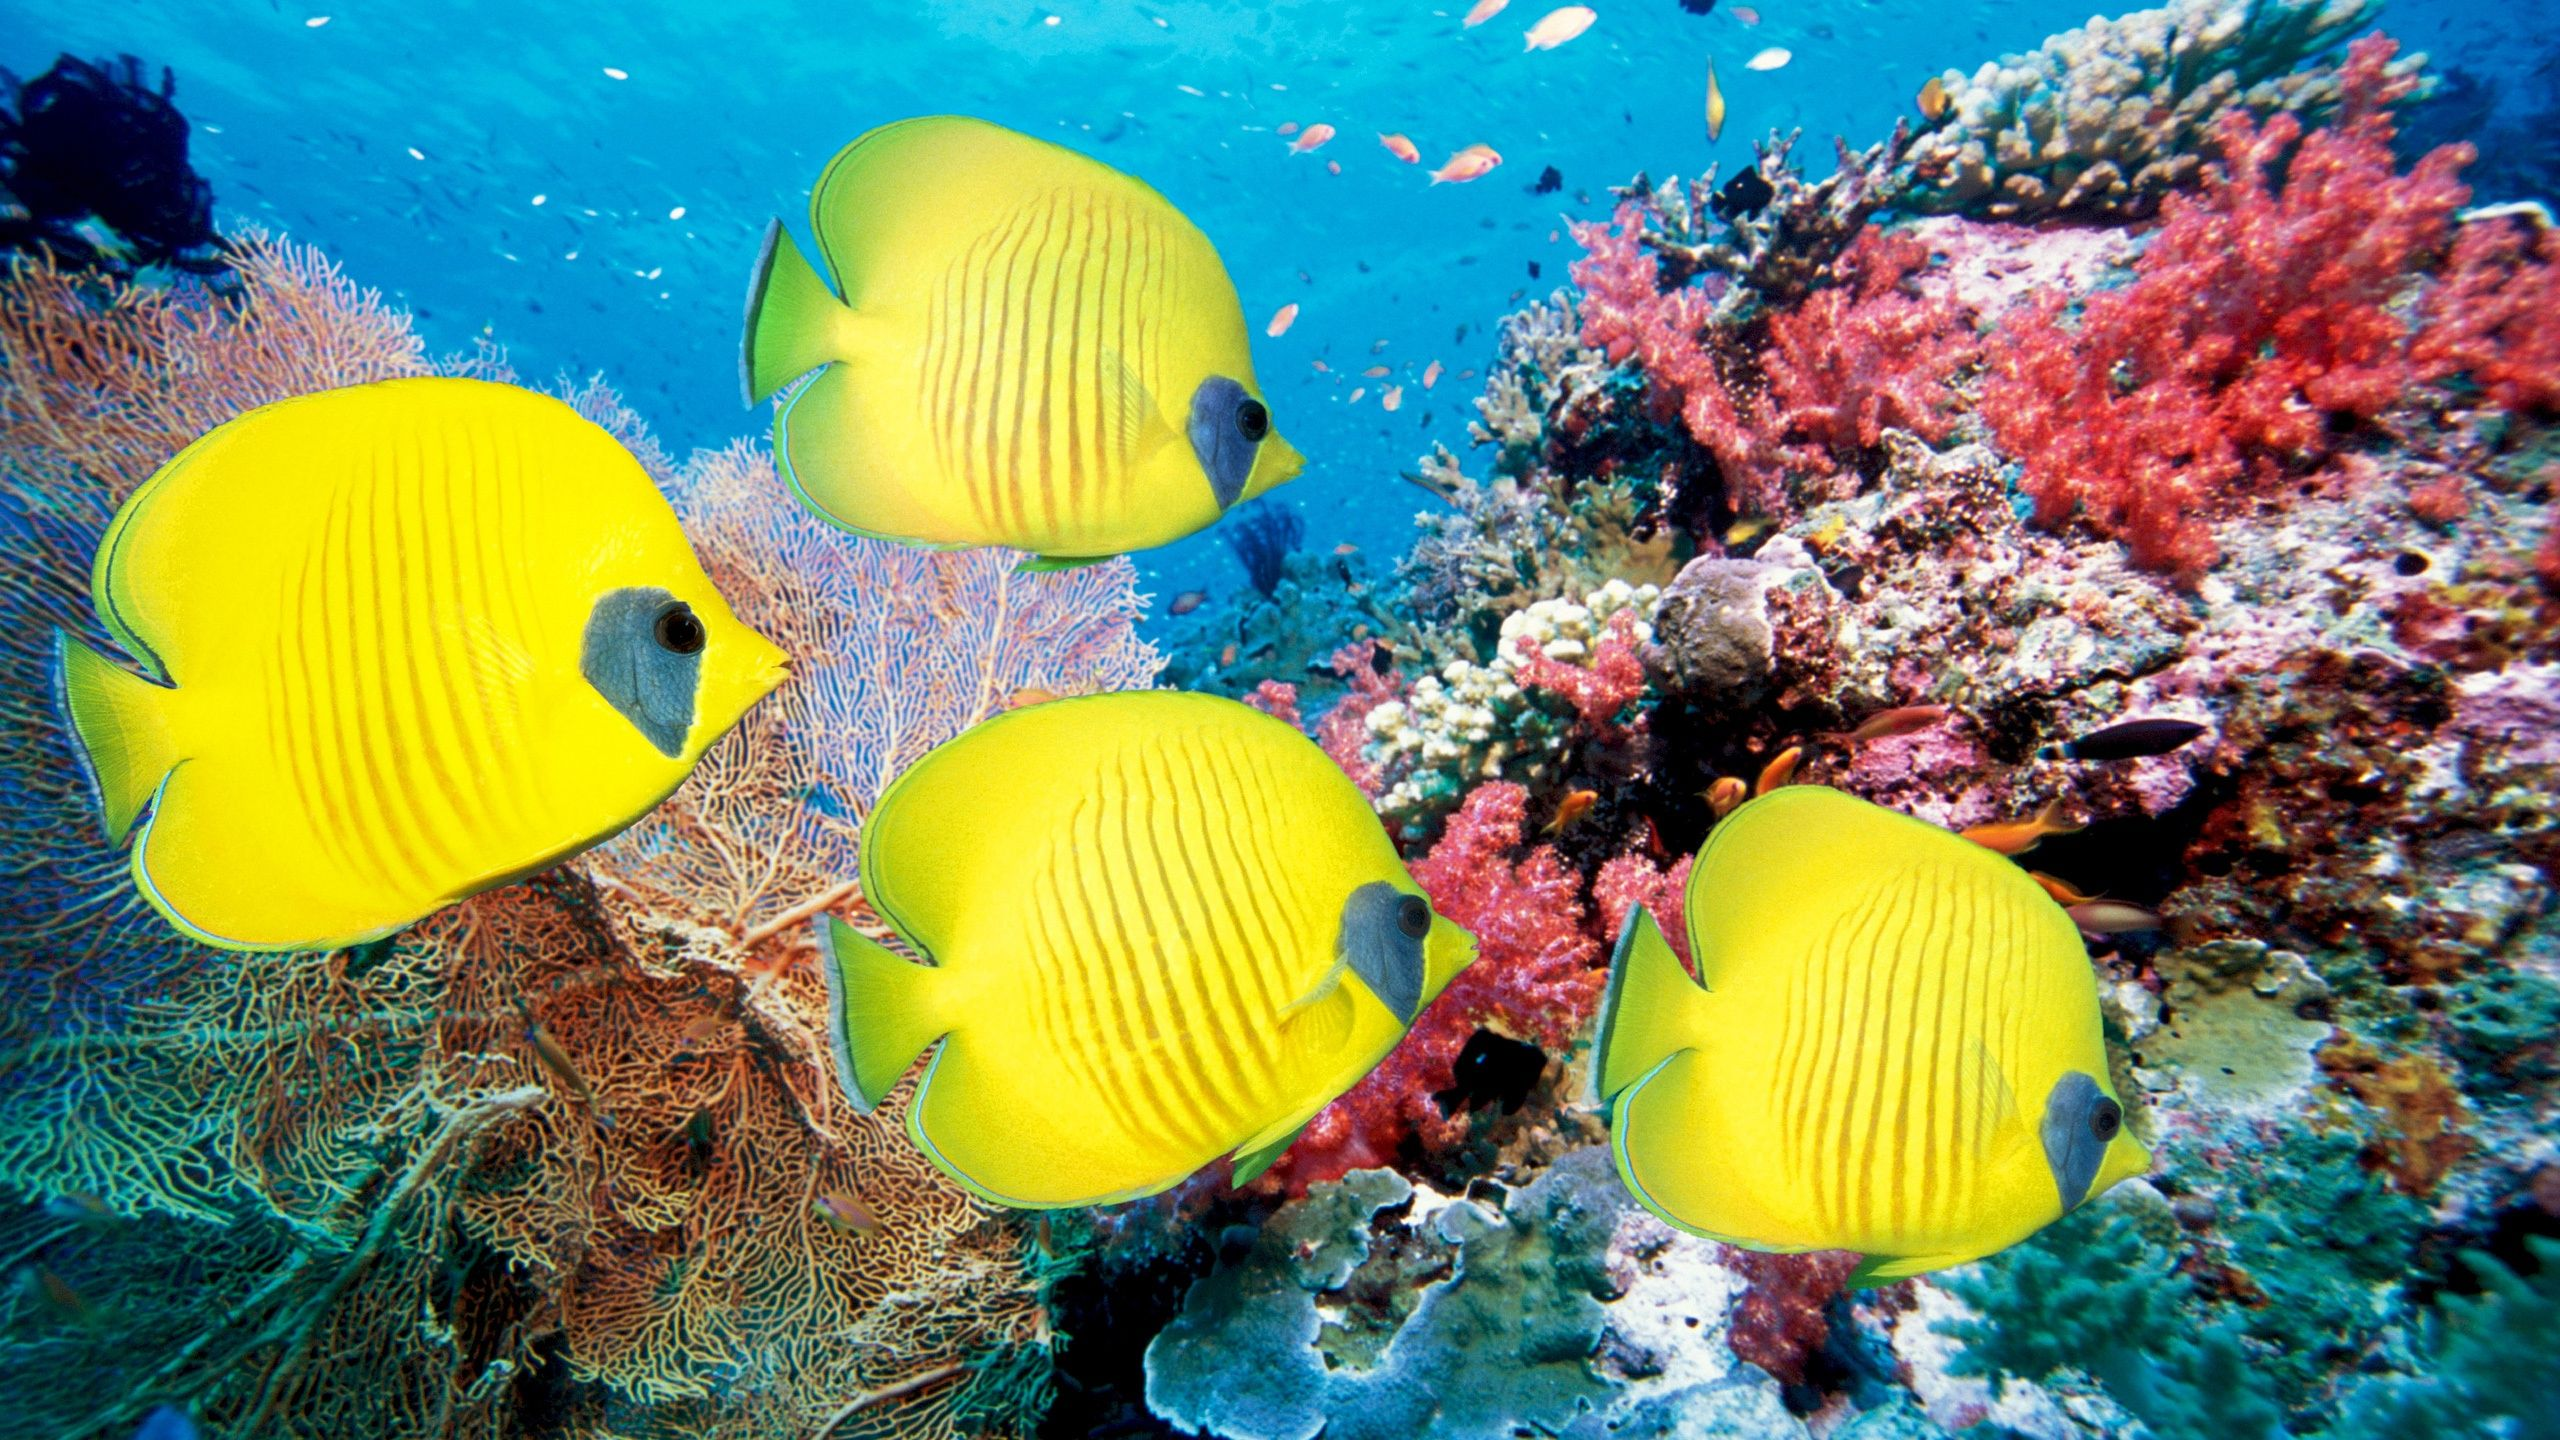 Underwater-world-of-tropical-fish-and-corals_2560x1440.jpg (2560×1440)